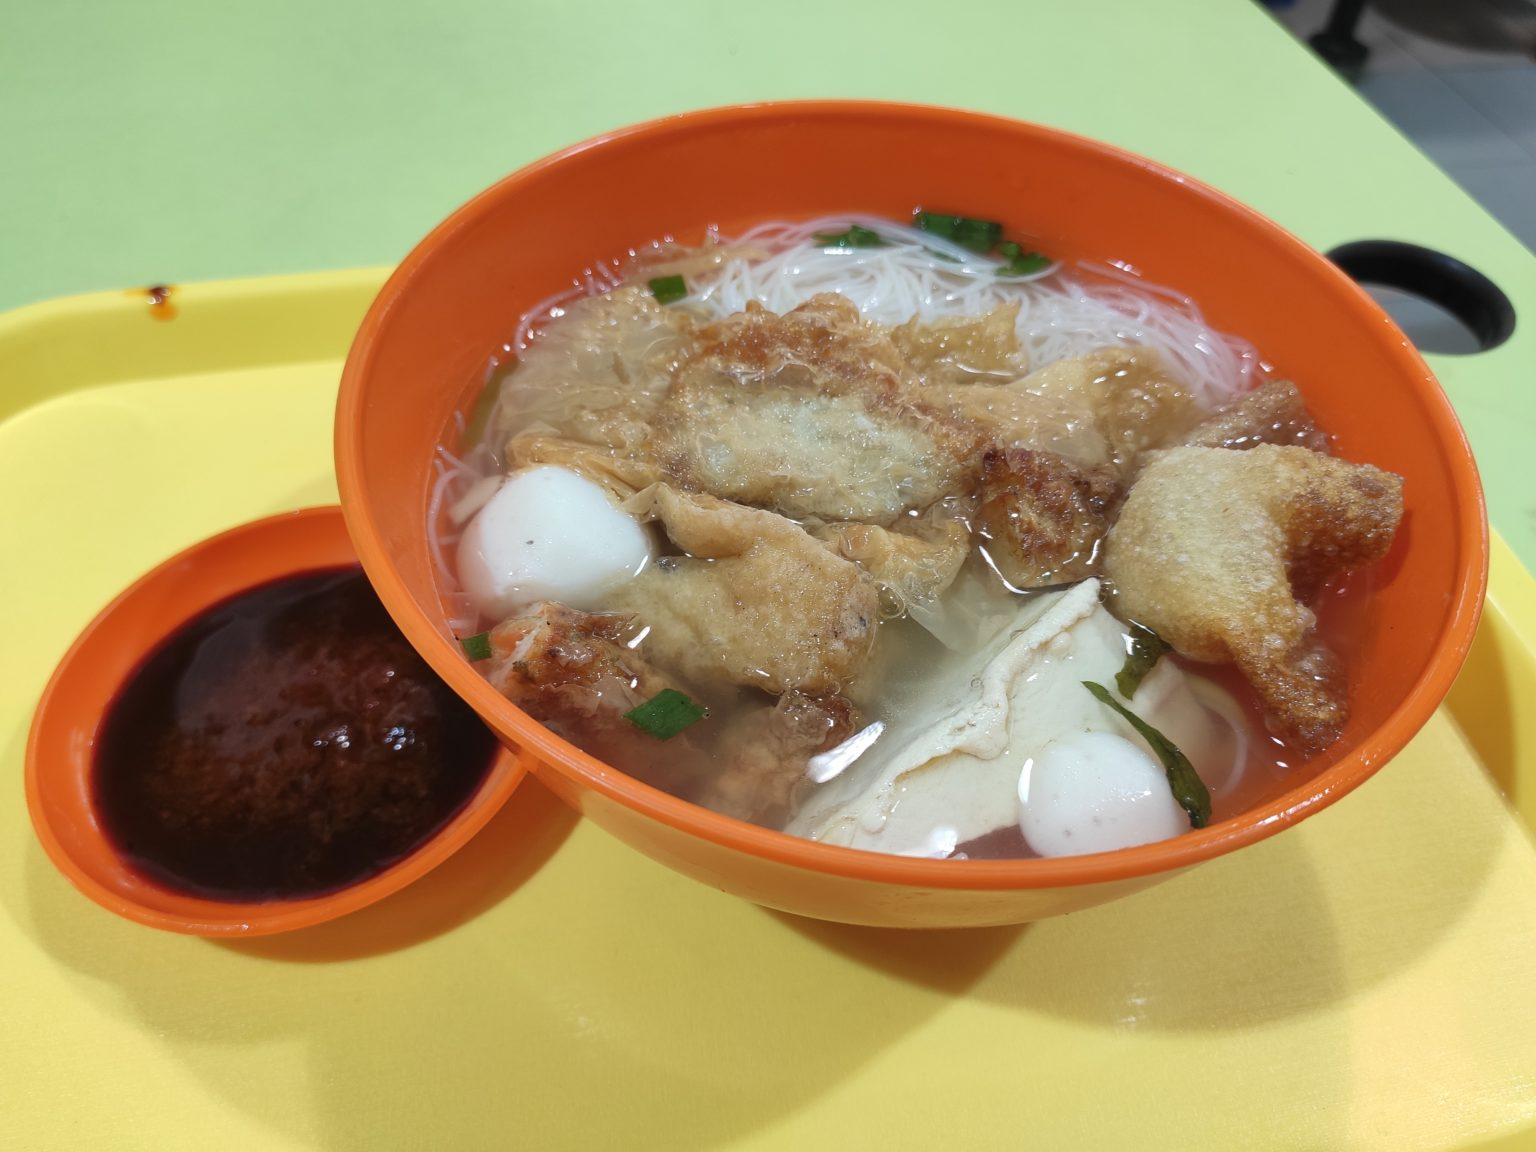 Review: Seng Kee Cooked Food (Singapore)